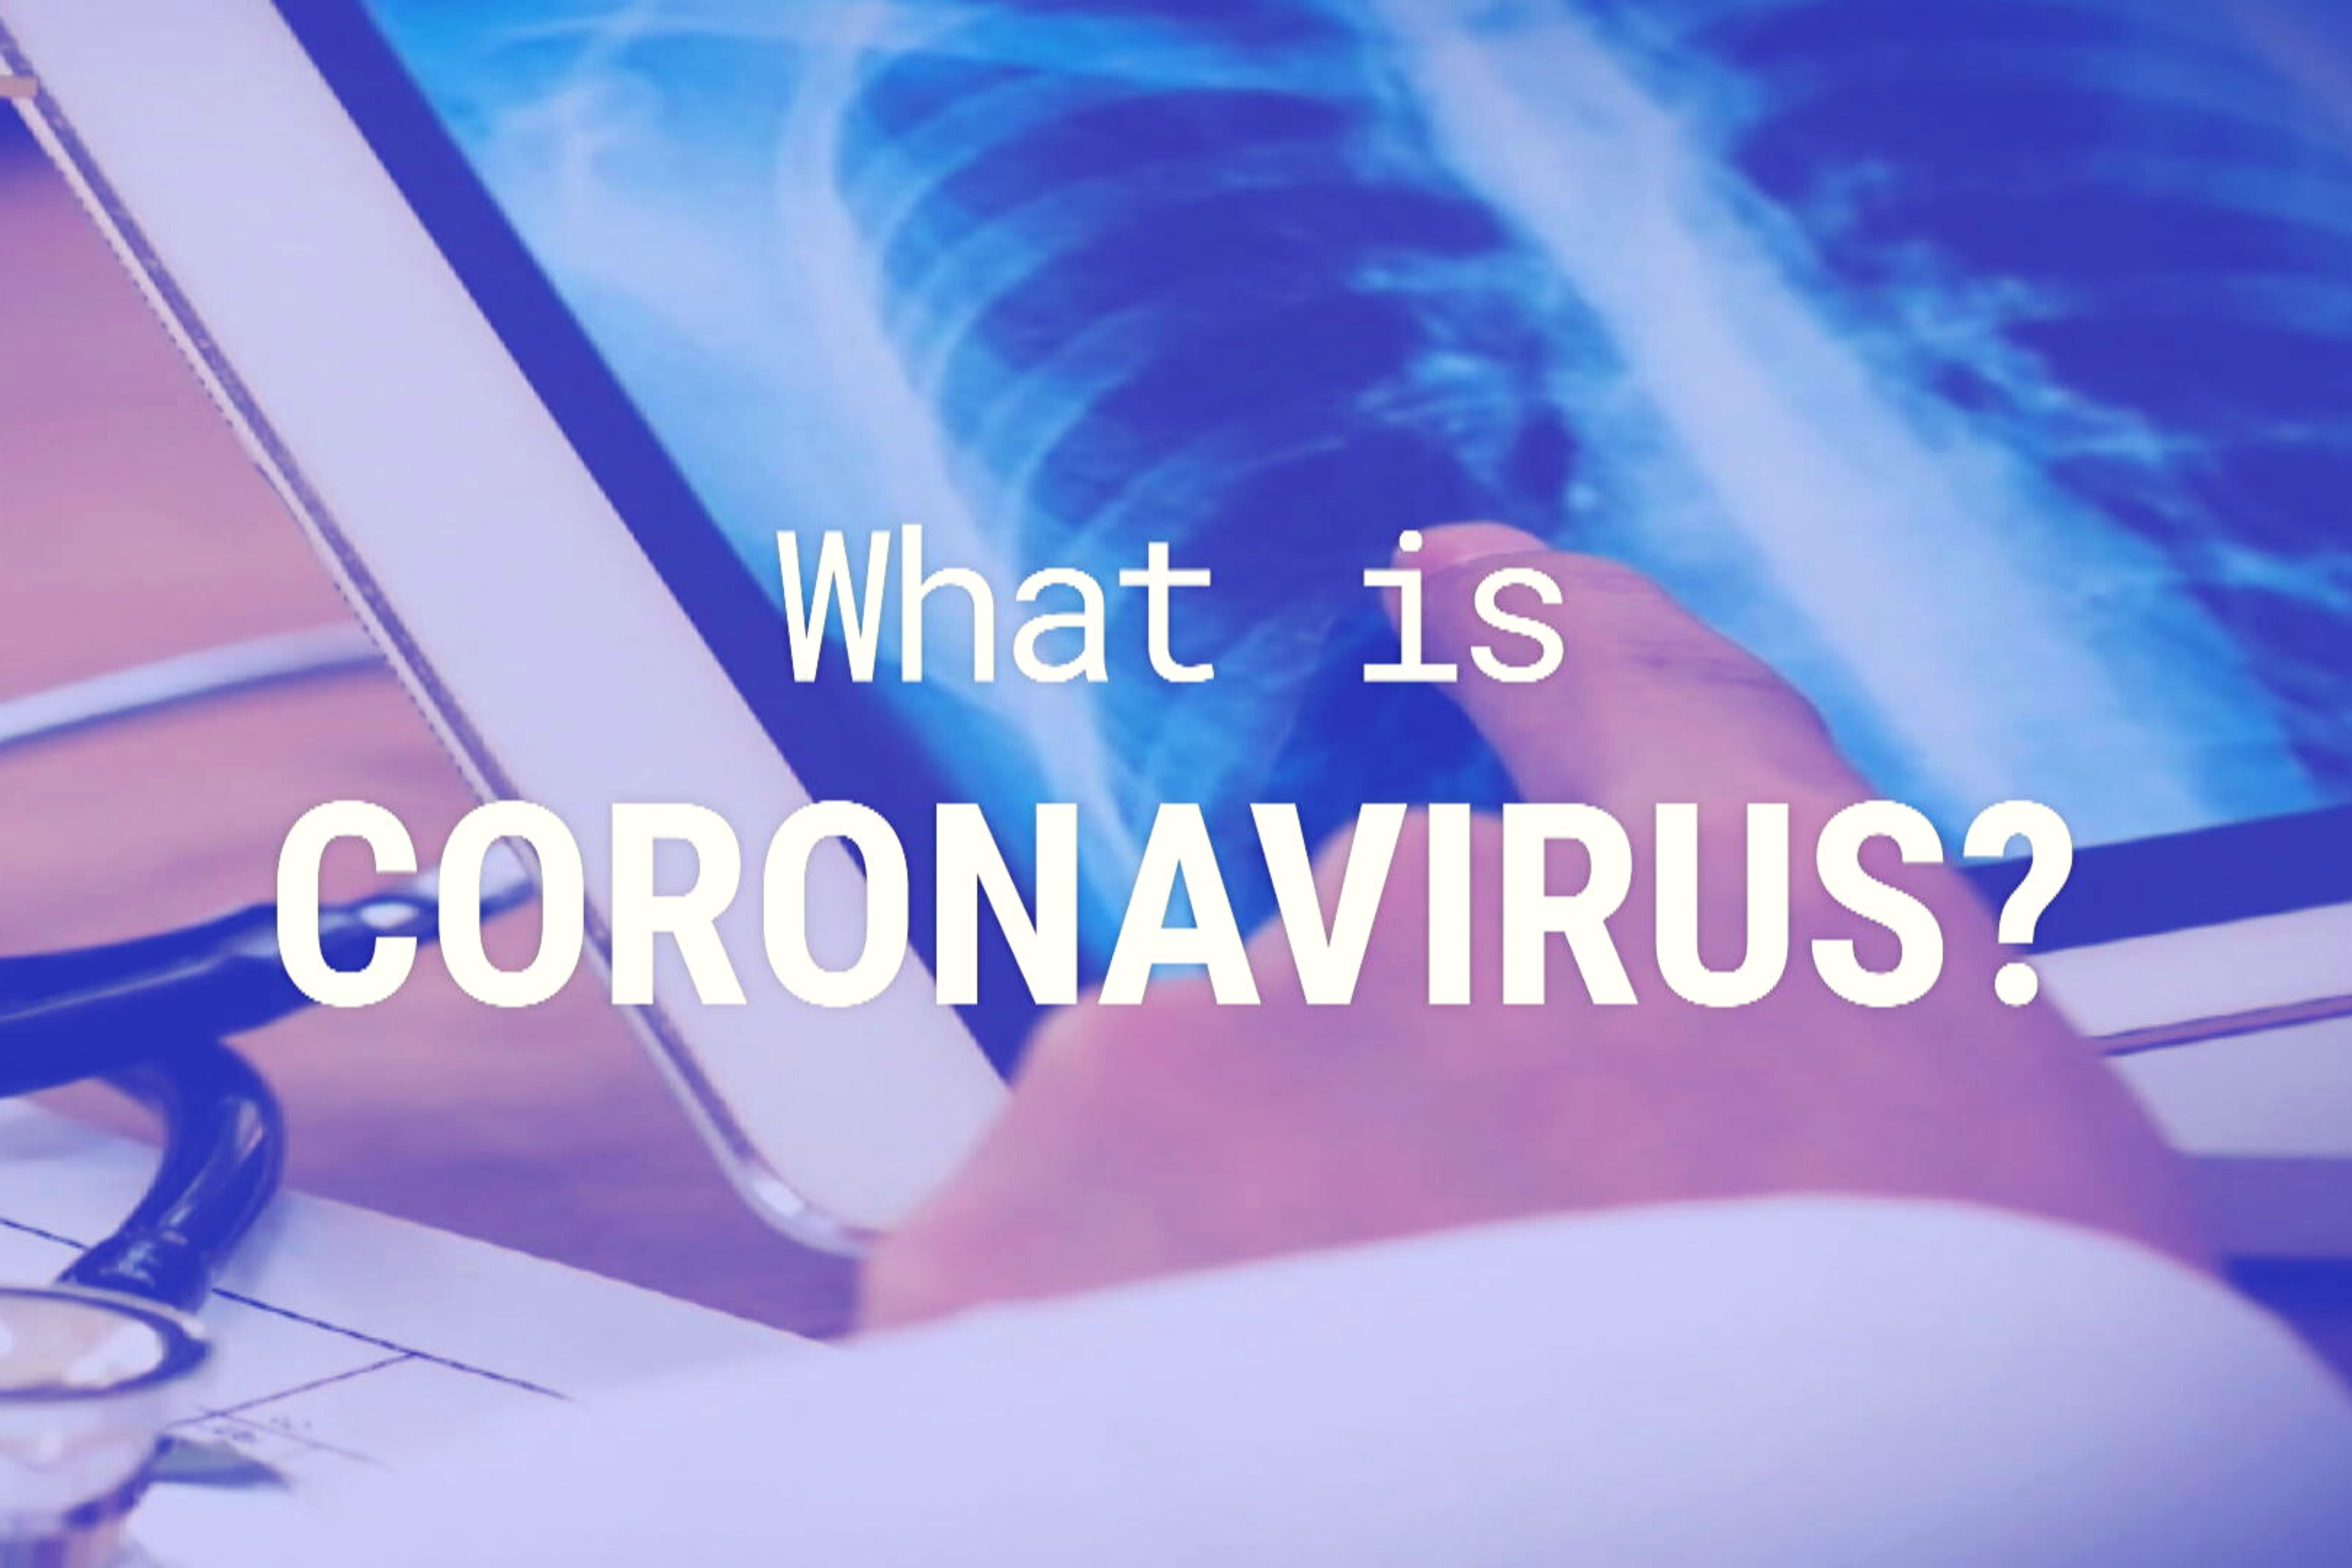 Is Corona virus really that scary?